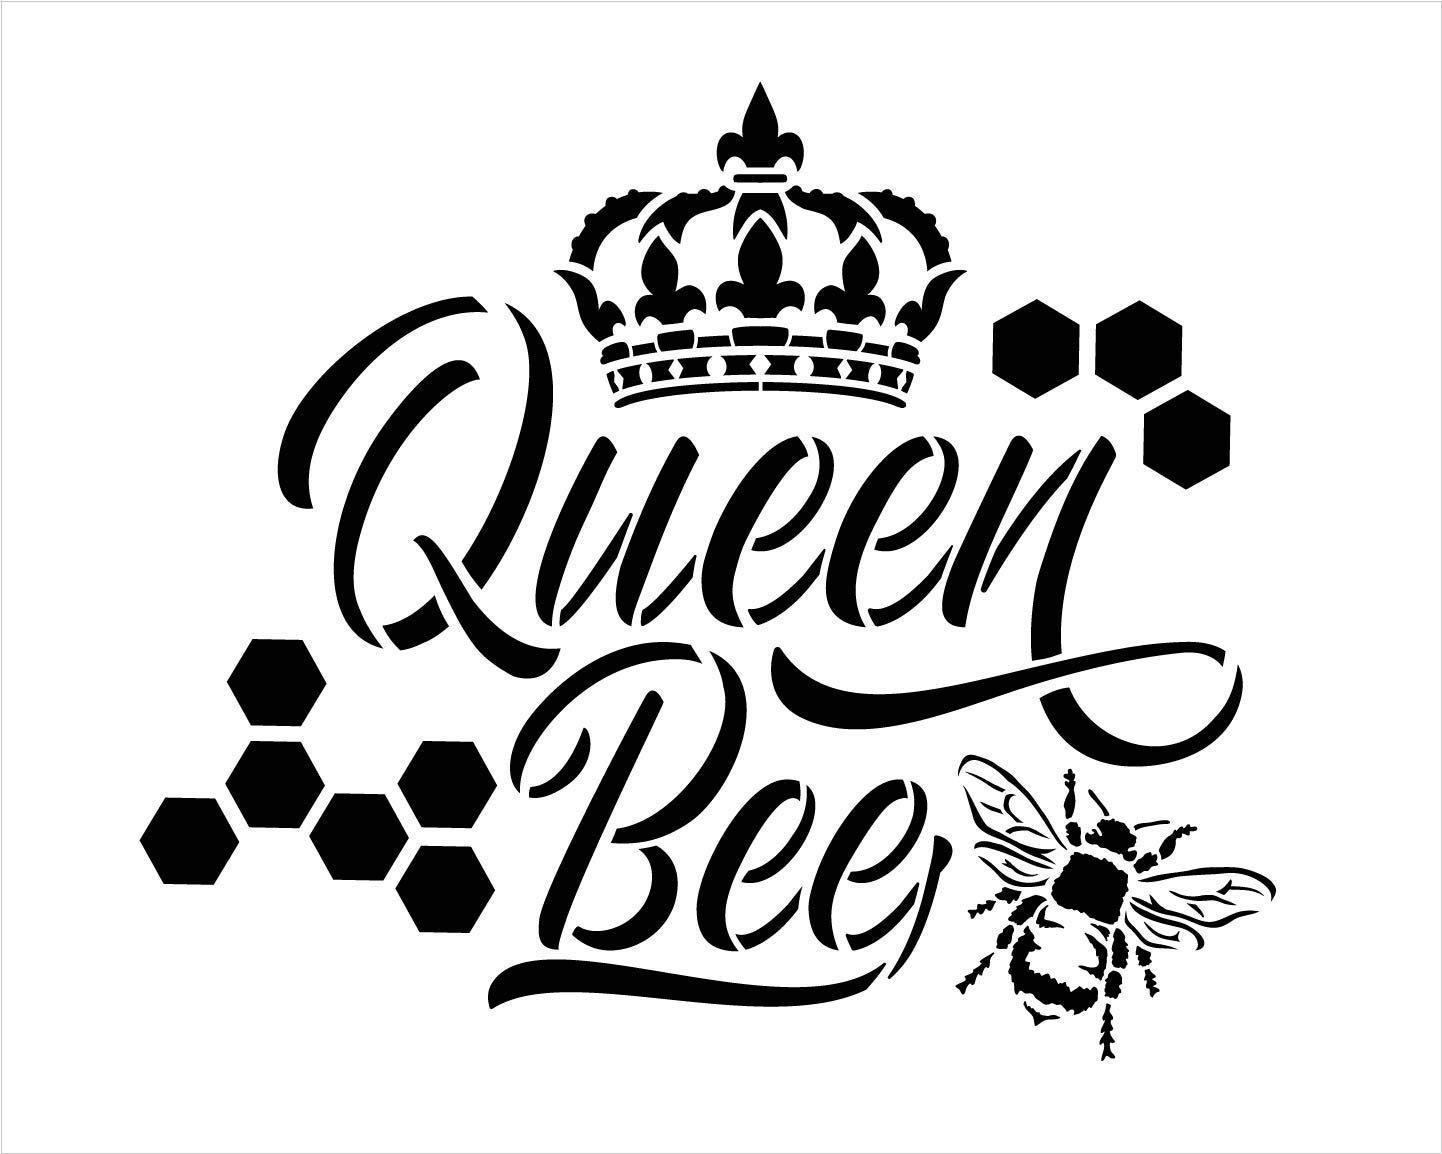 Queen Bee Stencil with Crown & Honeycomb by StudioR12 | DIY Farmhouse Script Home Decor | Cursive Country Word Art | Craft & Paint Wood Signs | Reusable Mylar Template | Select Size